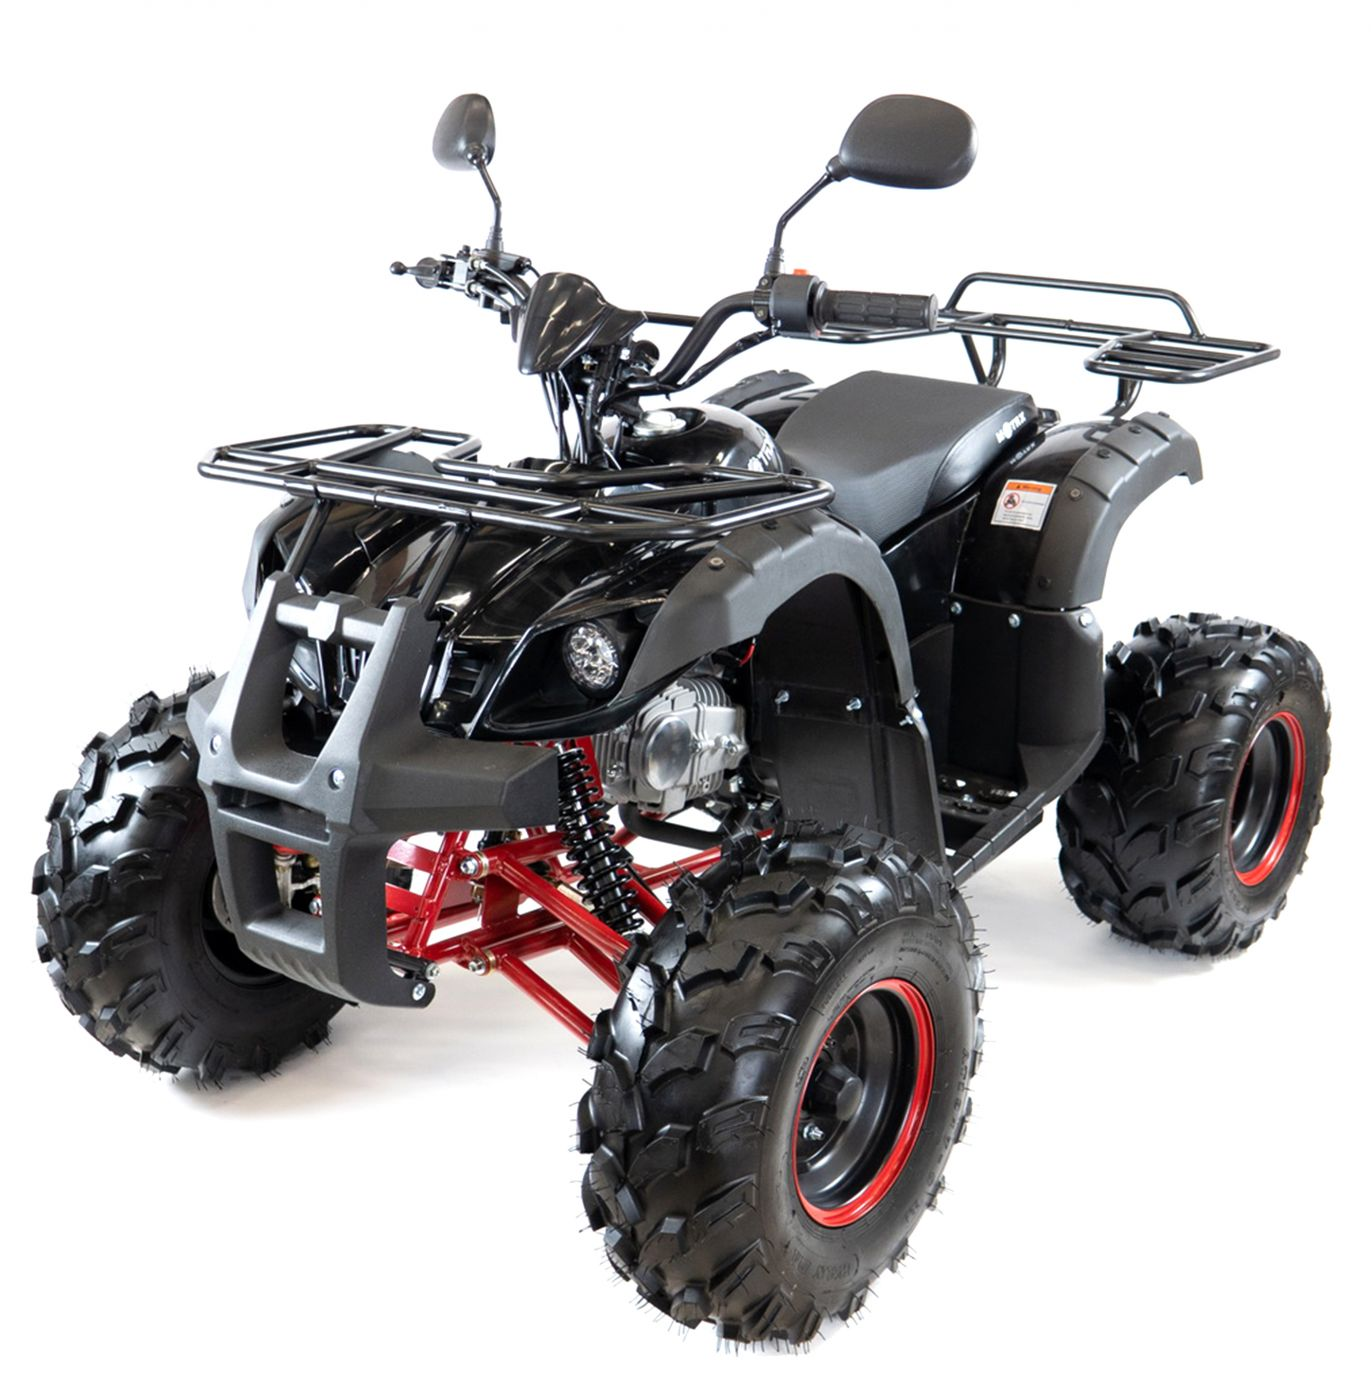 MOTAX ATV Grizlik 8